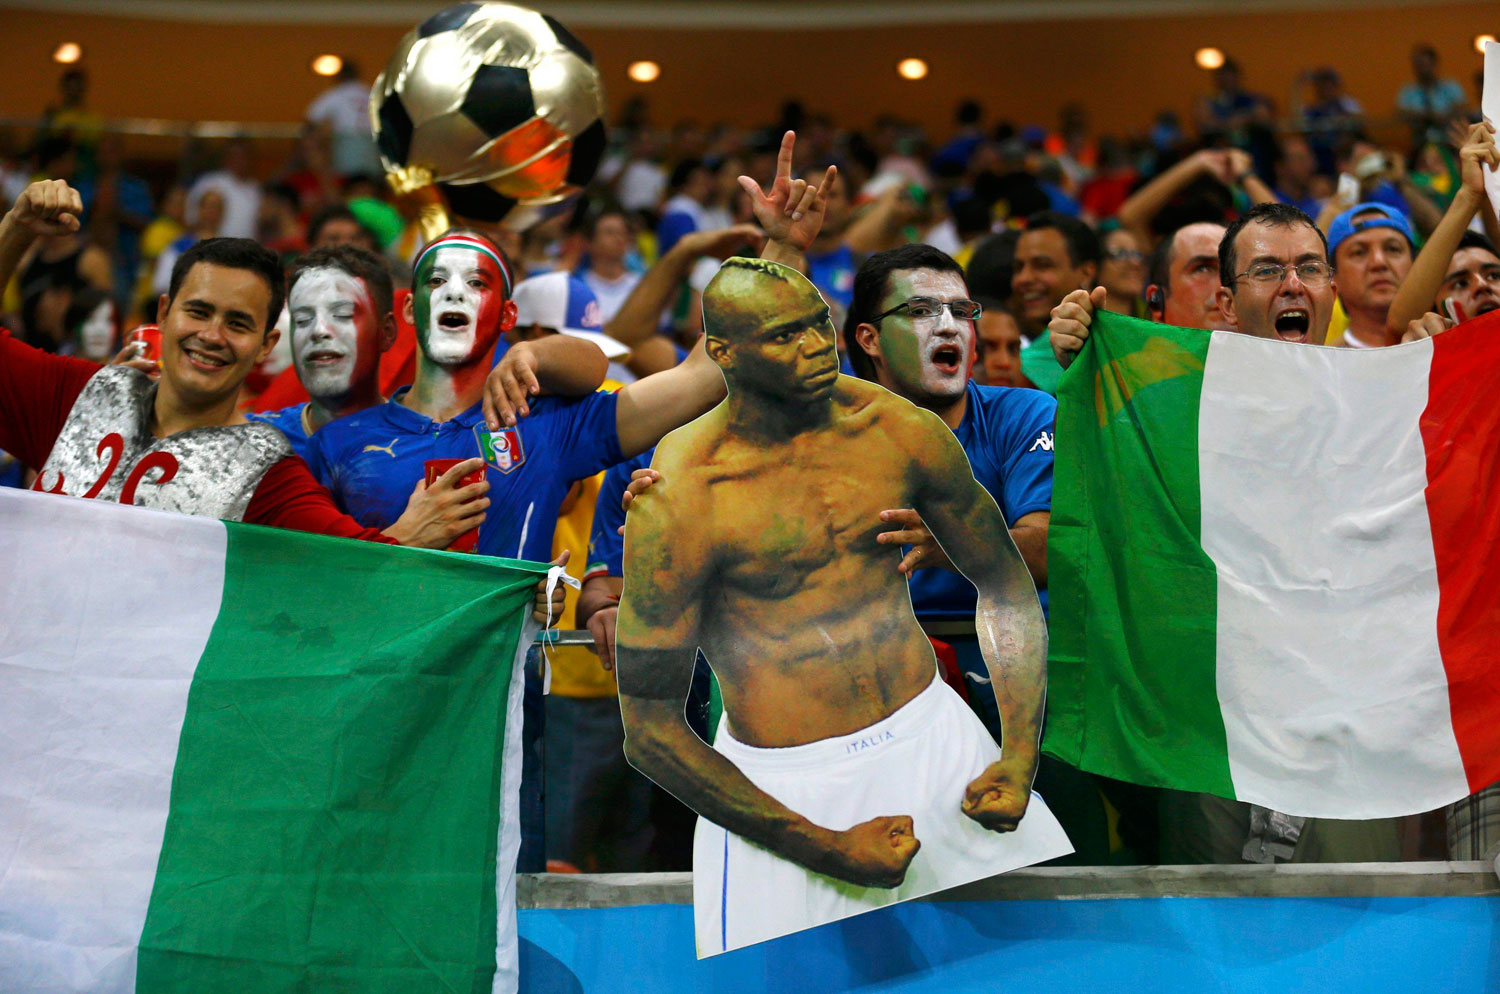 Italy fans hold a cutout of Italy's Mario Balotelli during the match between England and Italy at the Amazonia arena in Manaus, Brazil on June 14, 2014.